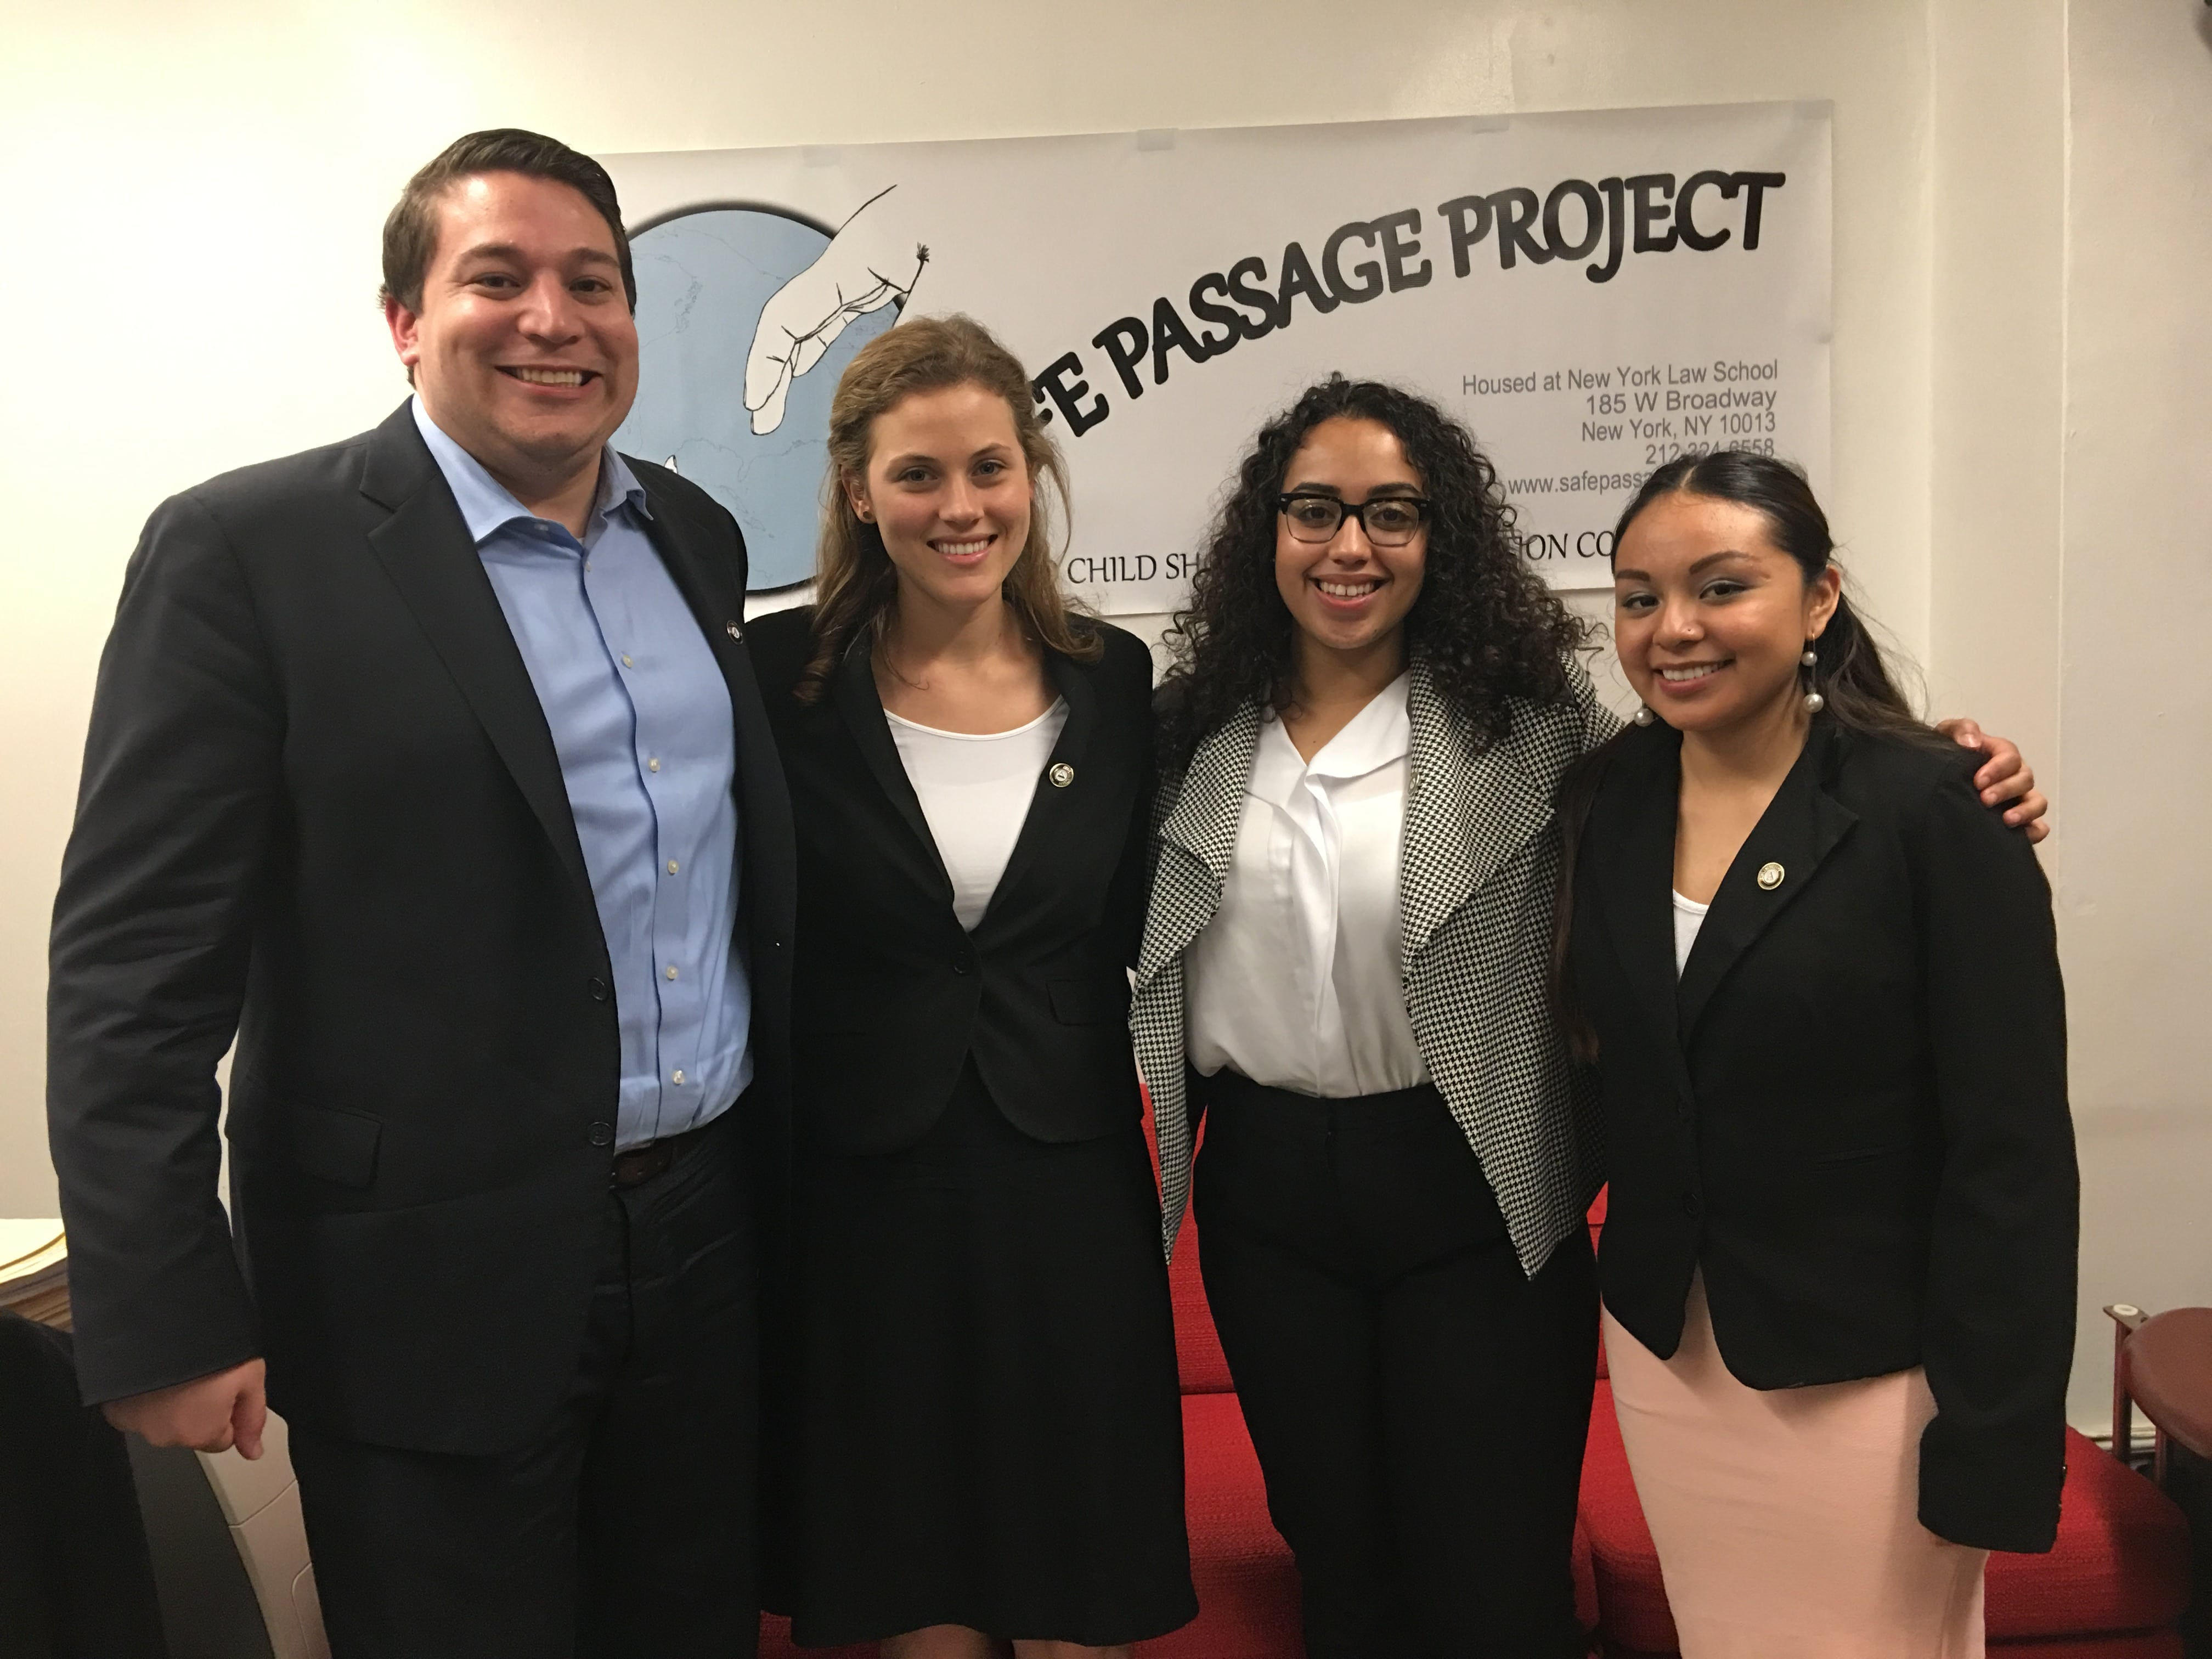 justice AmeriCorps fellows Juan Carlos Chiquillo, Charlotte Fager, Luisa Lebron and Elizabeth Rivera.